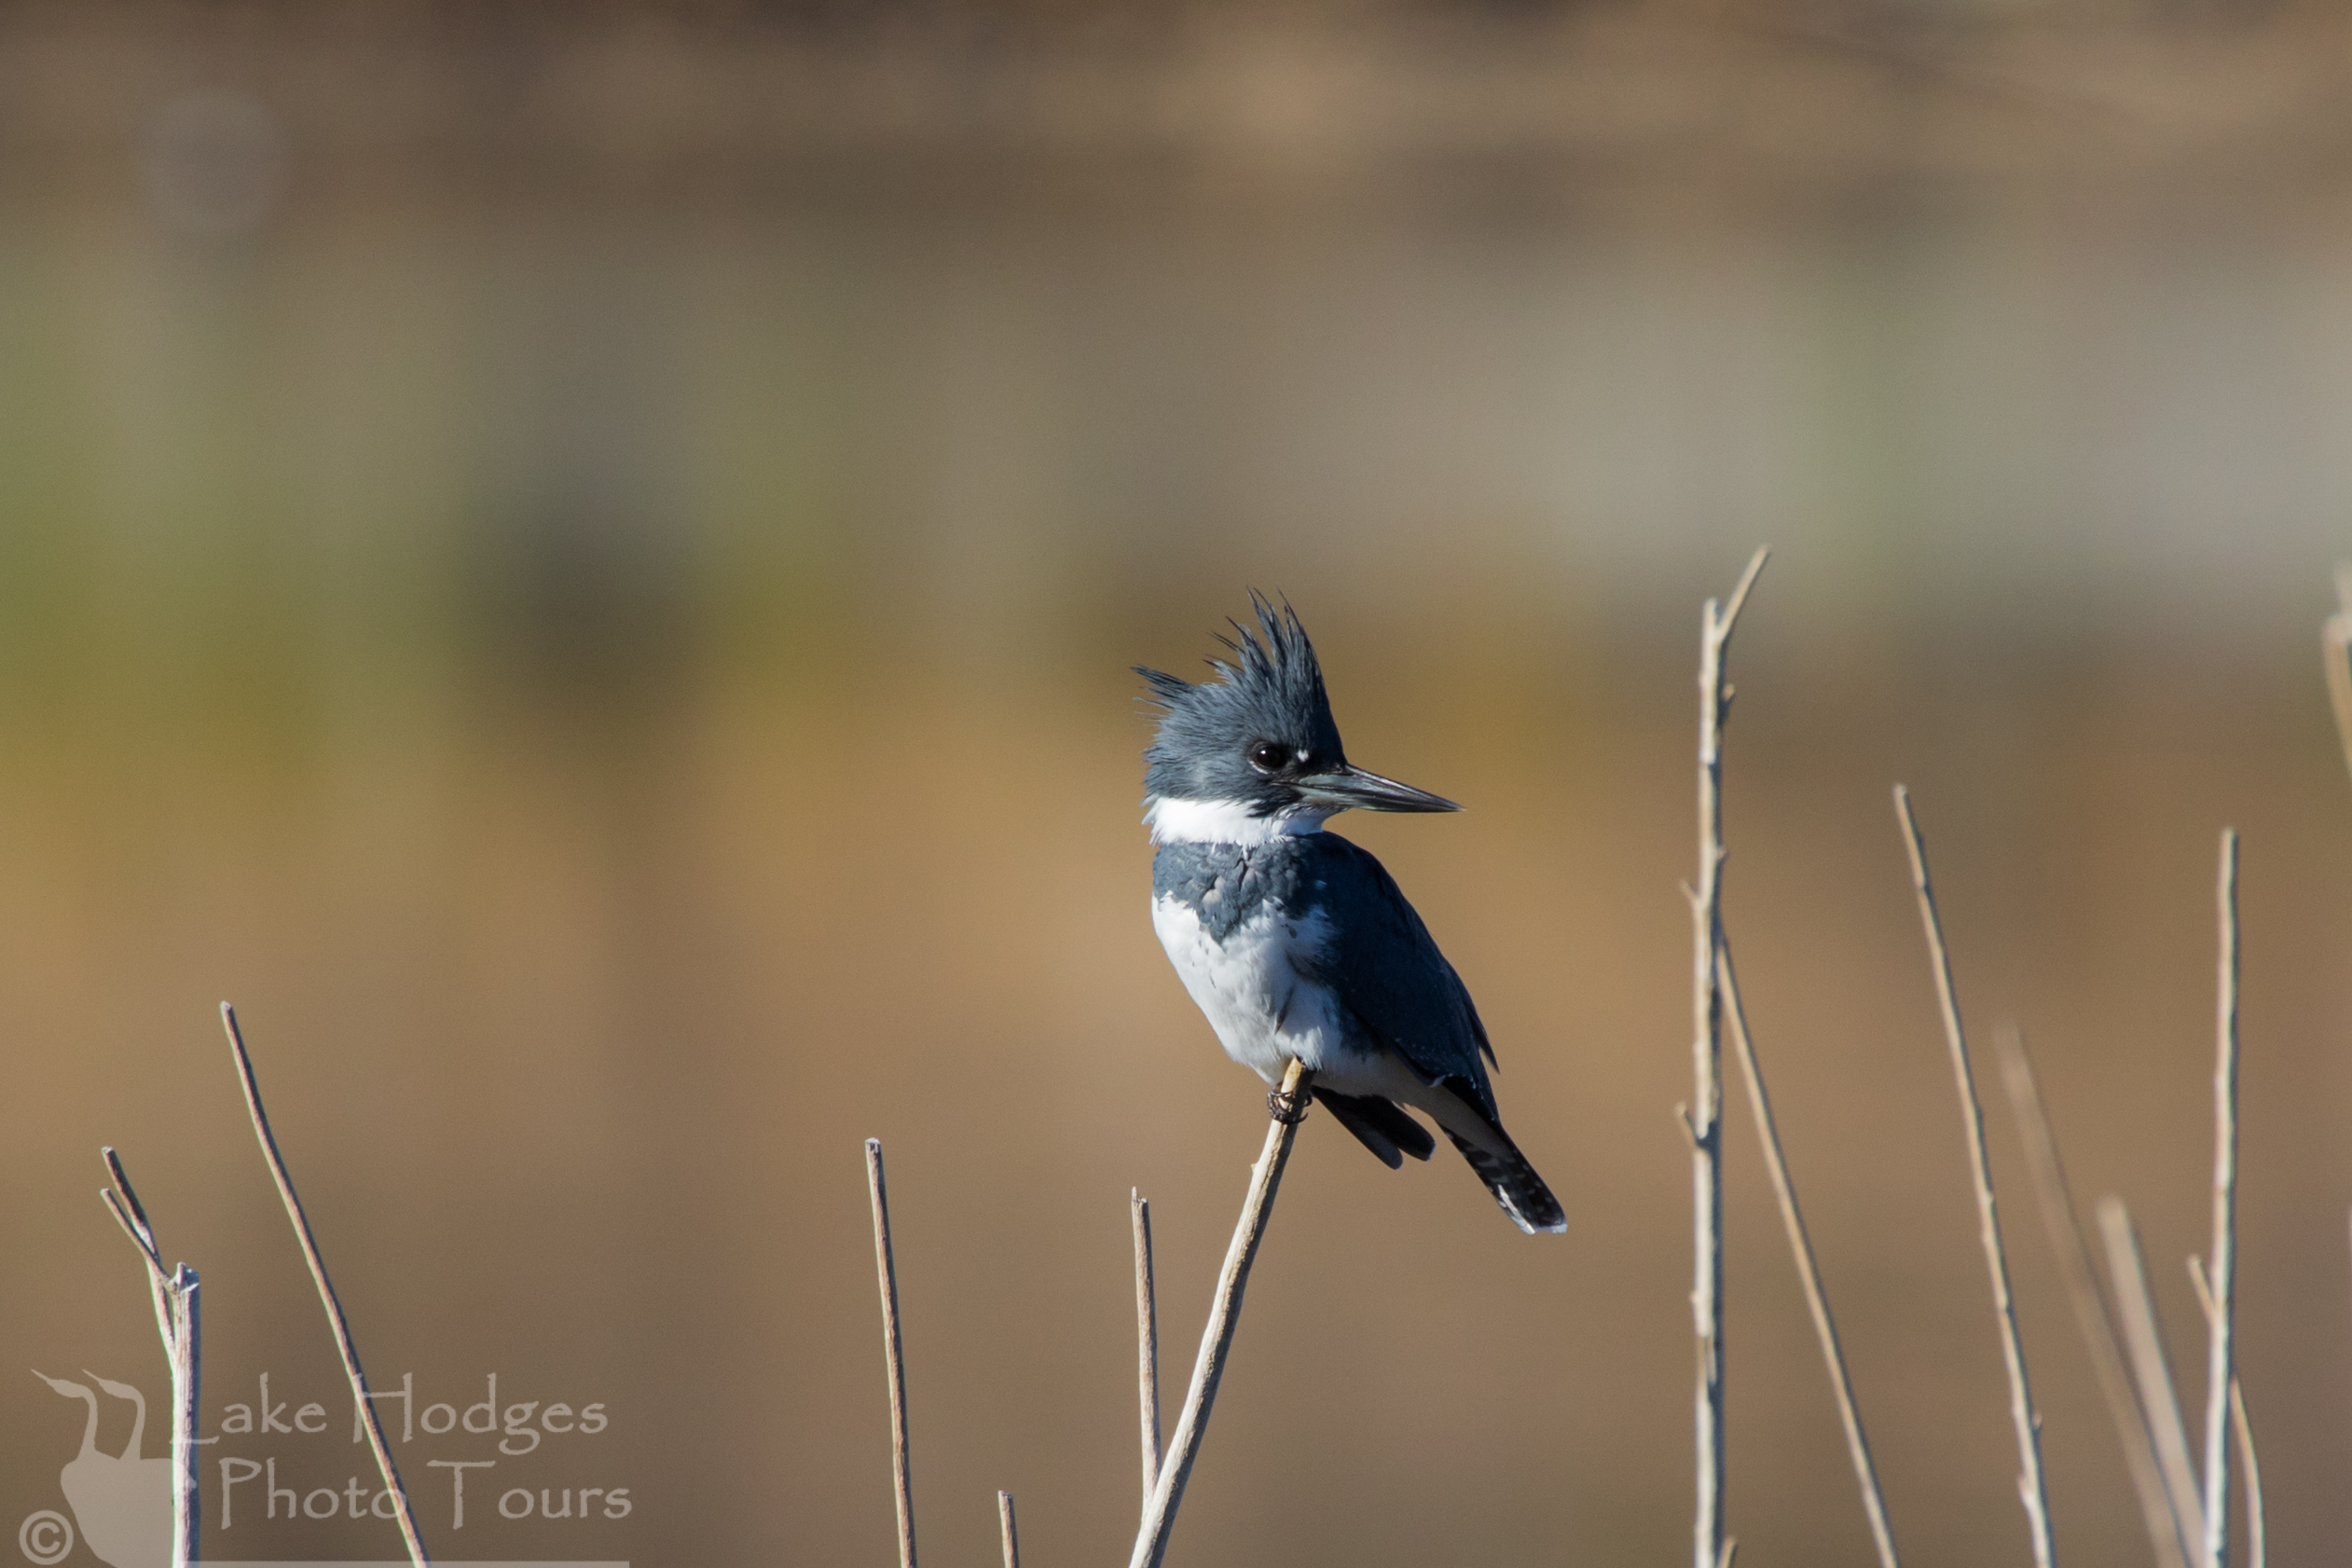 Belted Kingfisher at Lake Hodges Photo Tours